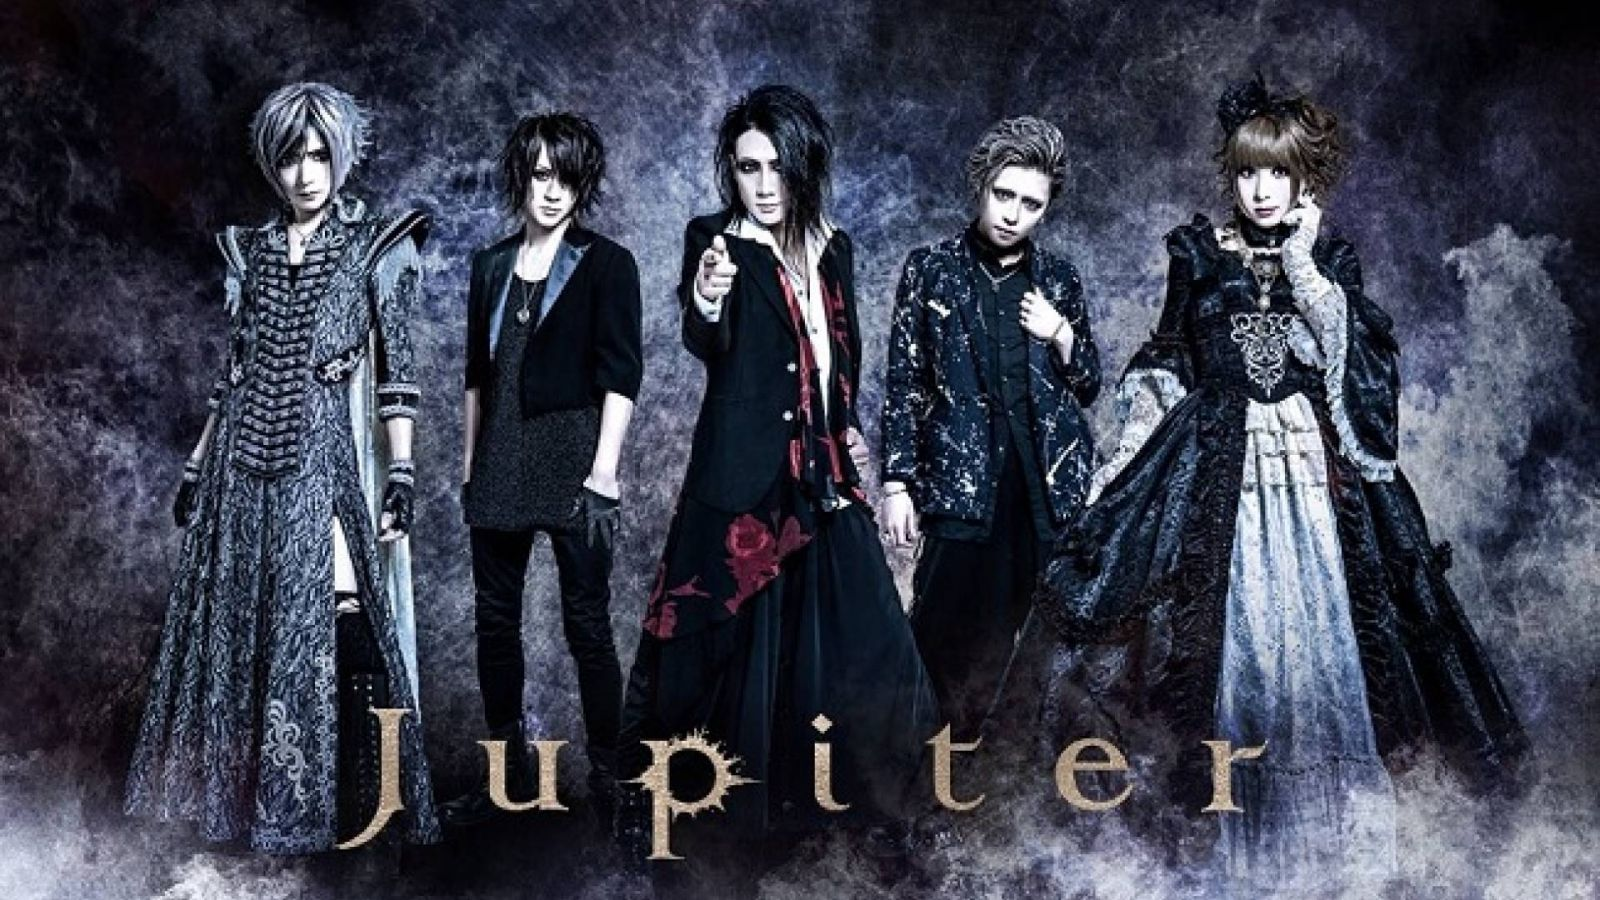 RUCY verlässt die Visual Metal Band Jupiter © Jupiter